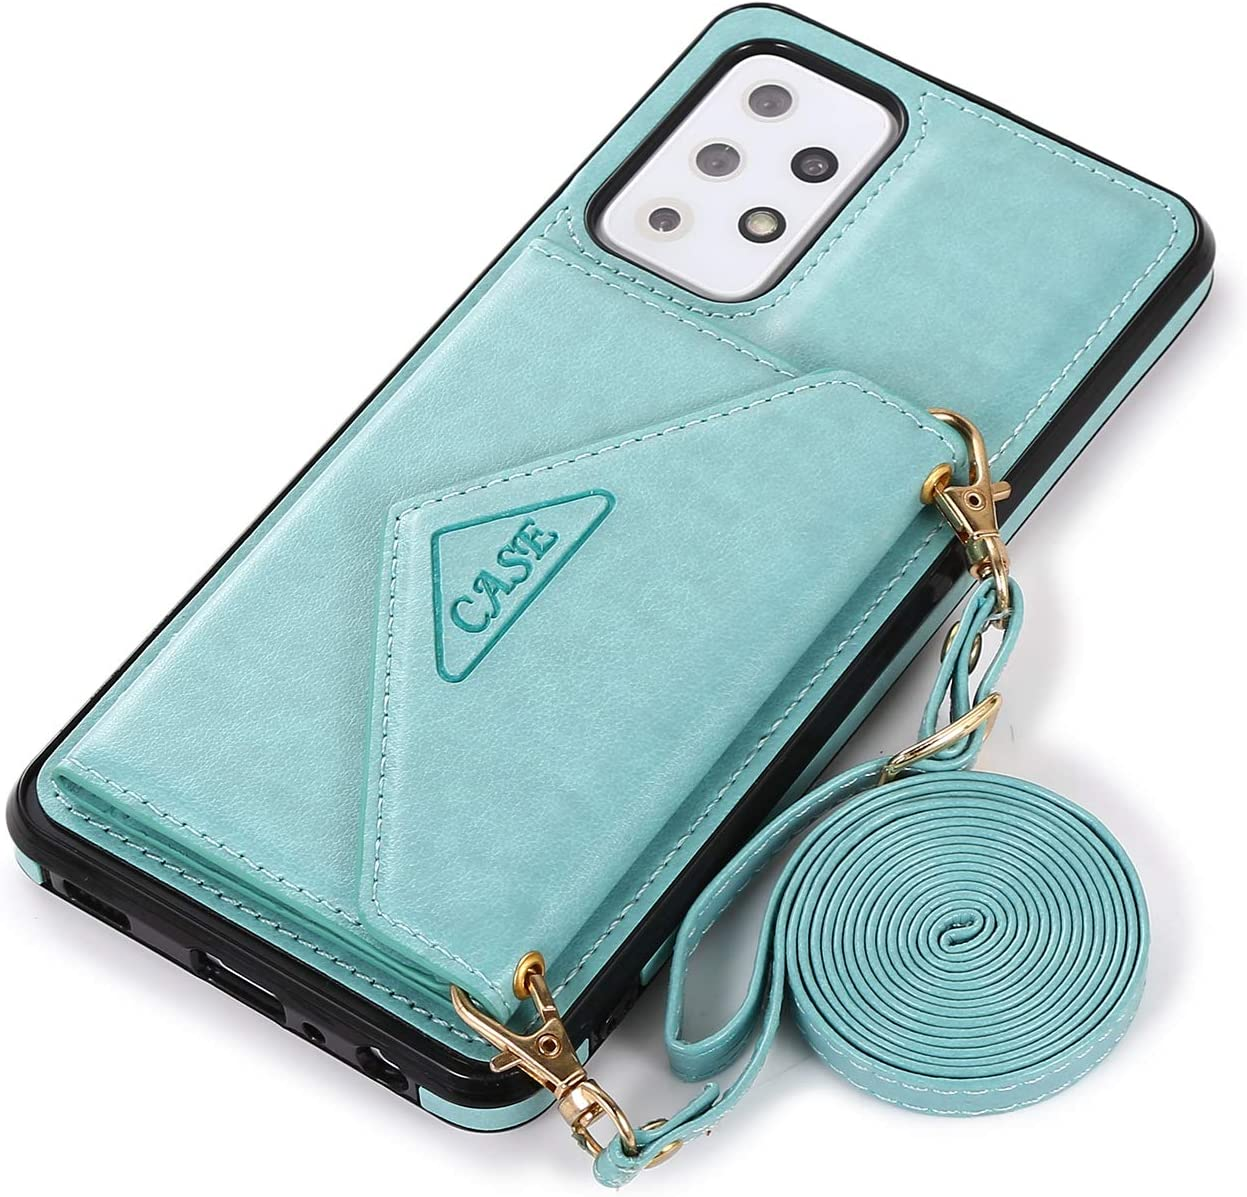 DAMONDY for Galaxy A52 Wallet Case,Galaxy A52 5G Flip Case, Slim Protective Case with Credit Card Slot Holder Flip Folio Soft PU Leather Magnetic Closure Cover for Samsung A52 5G -Mint